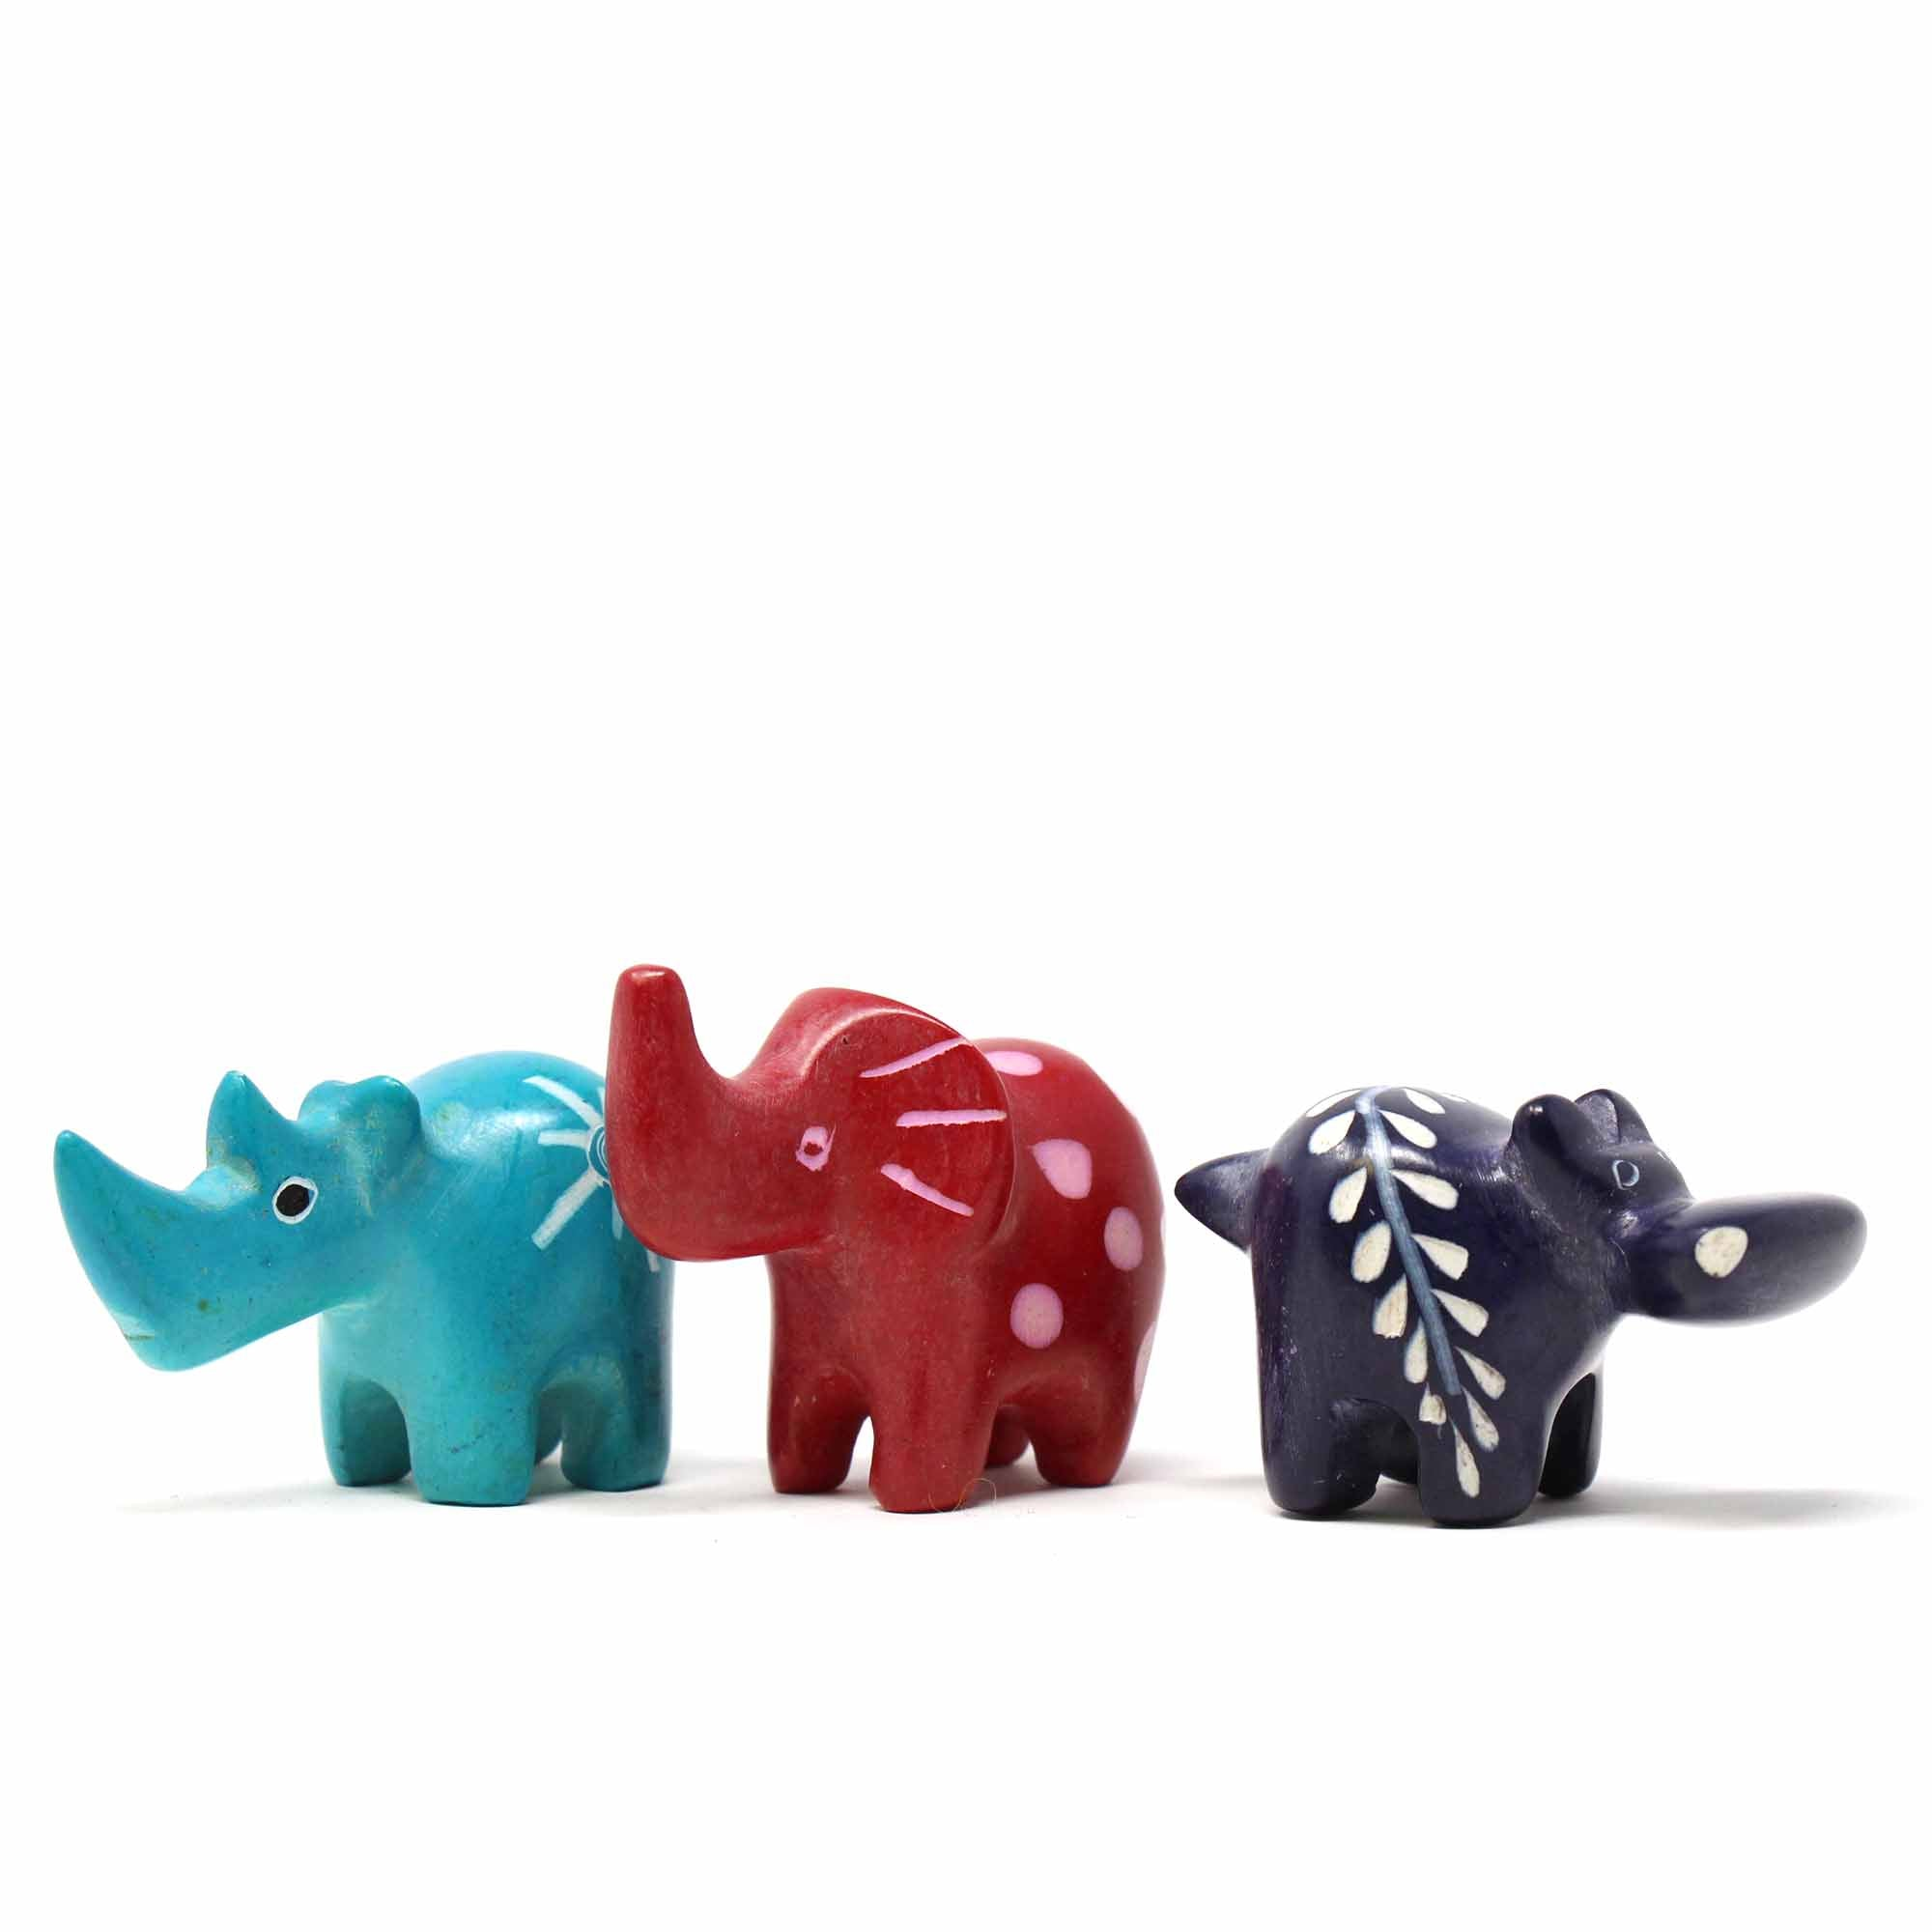 African Soapstone Safari sculptures in bright colors.